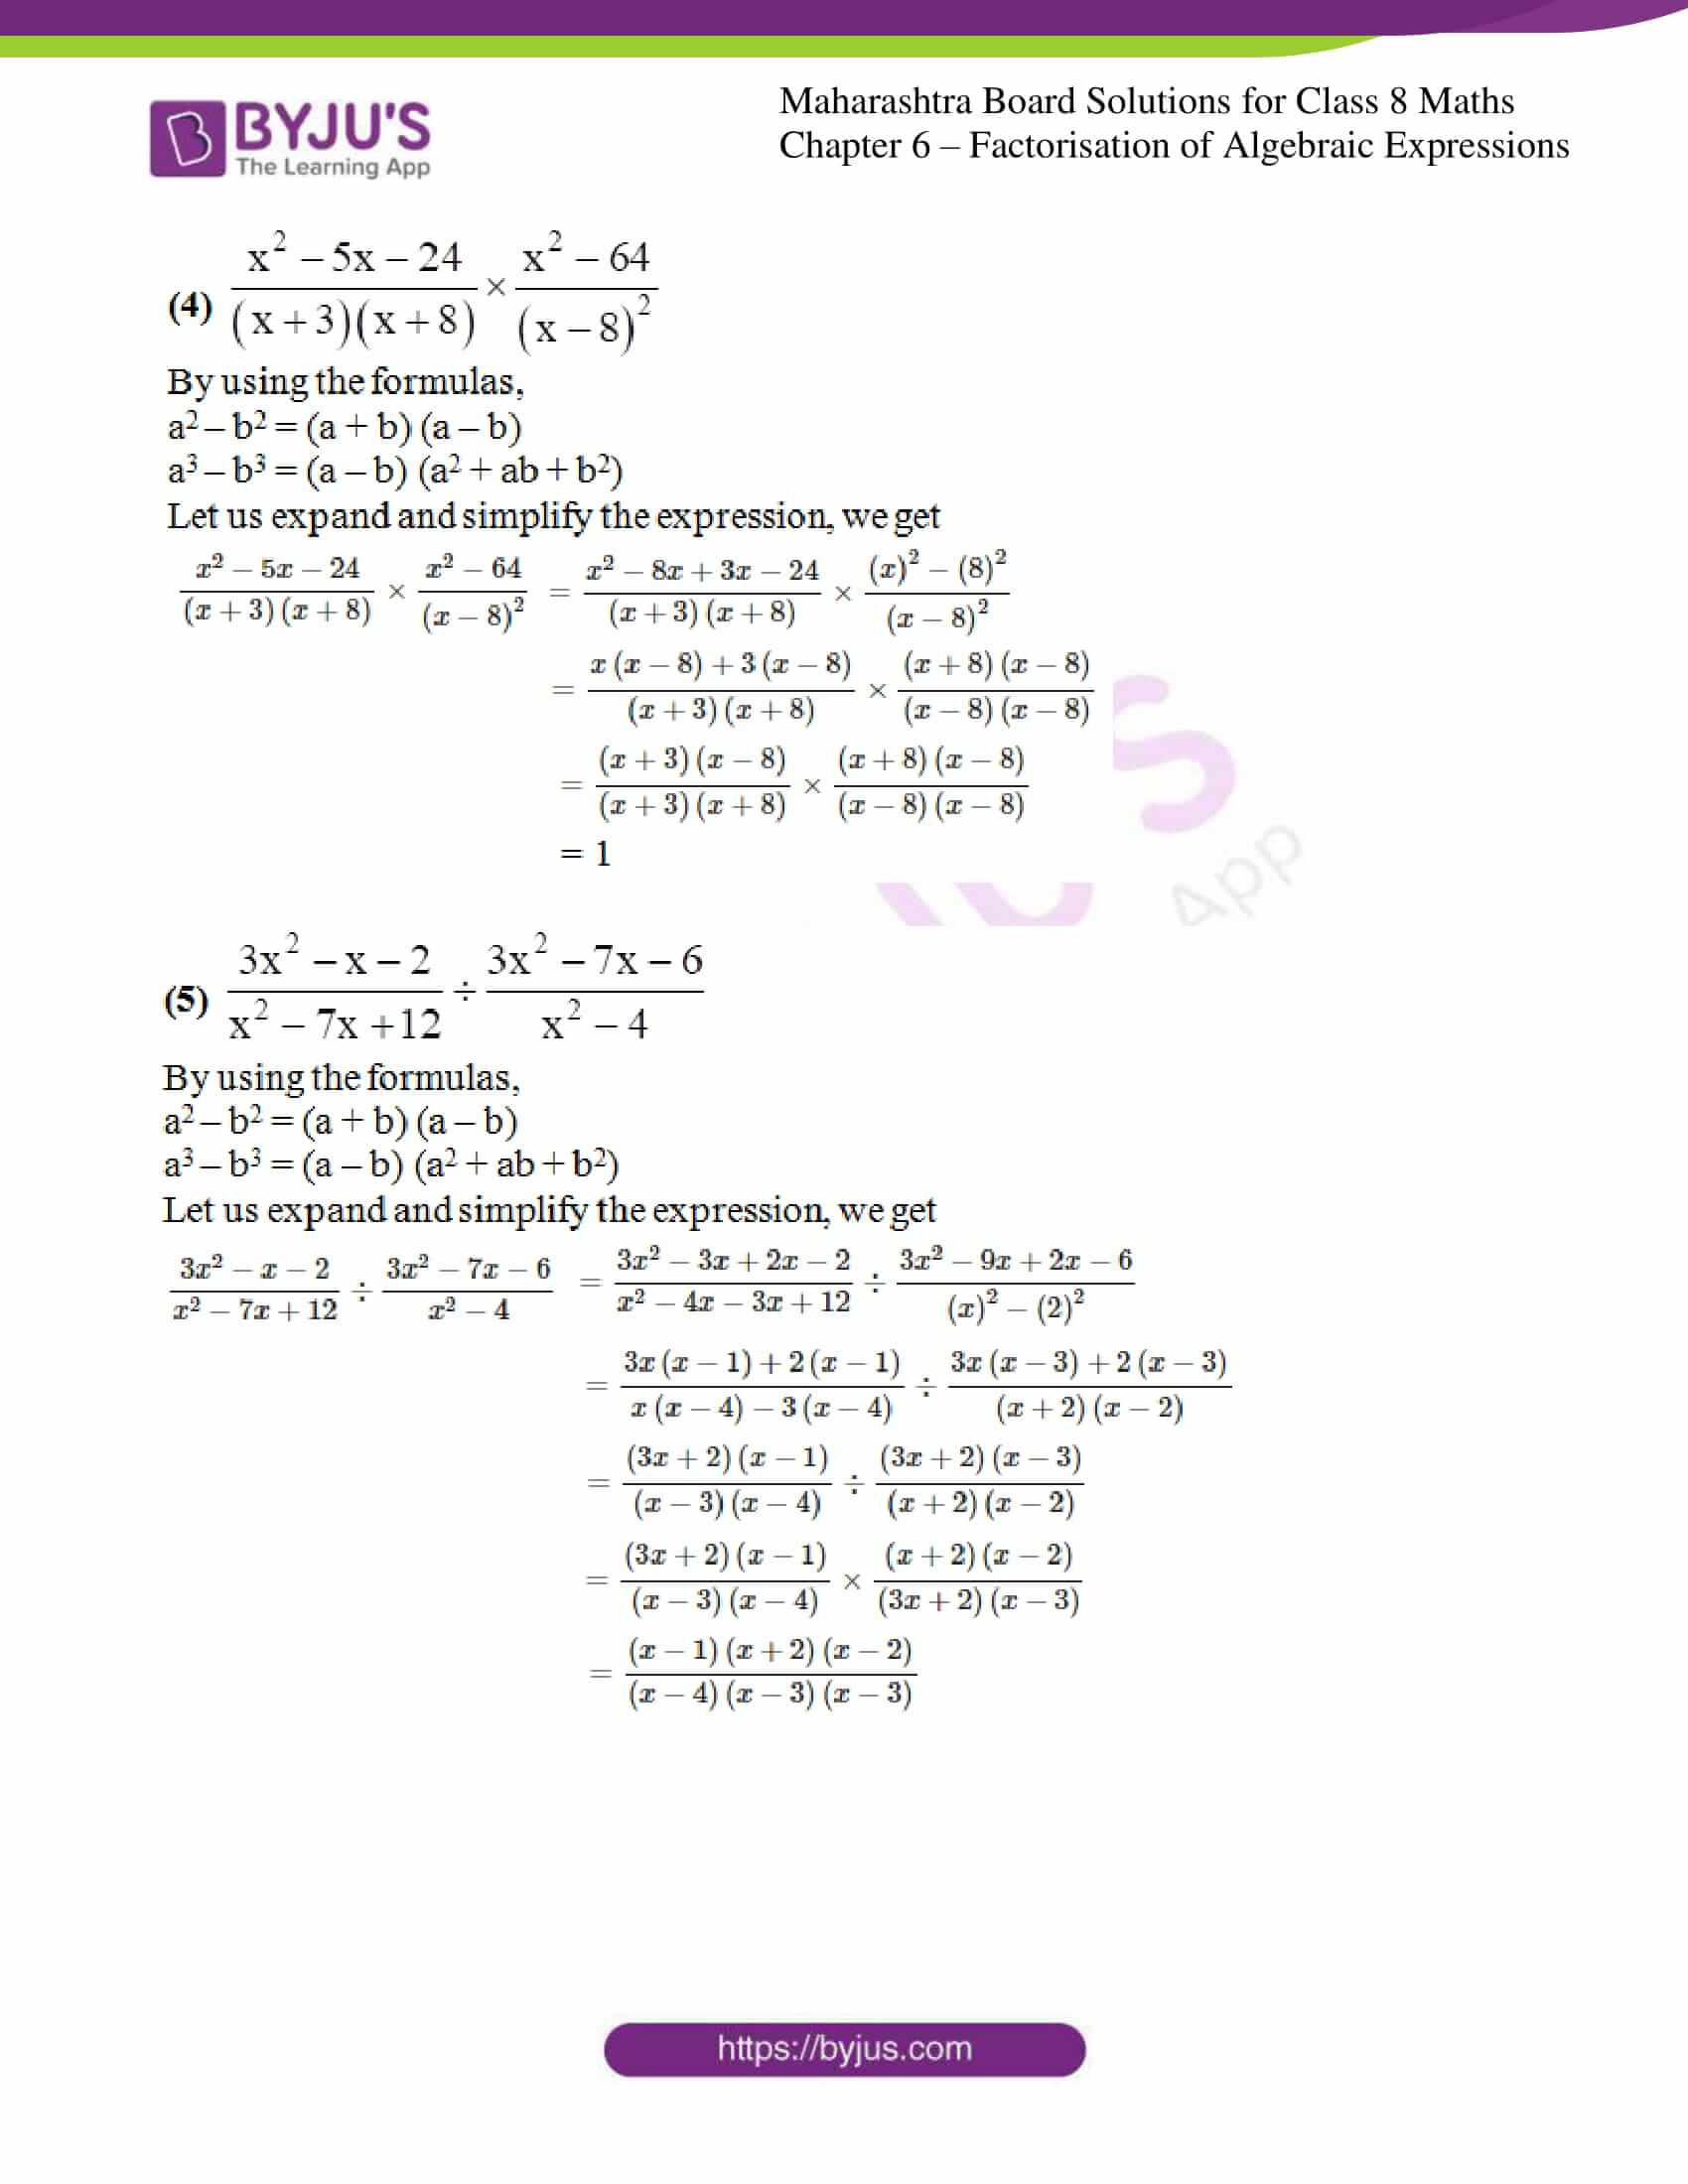 msbshse sol for class 8 maths chapter 6 14